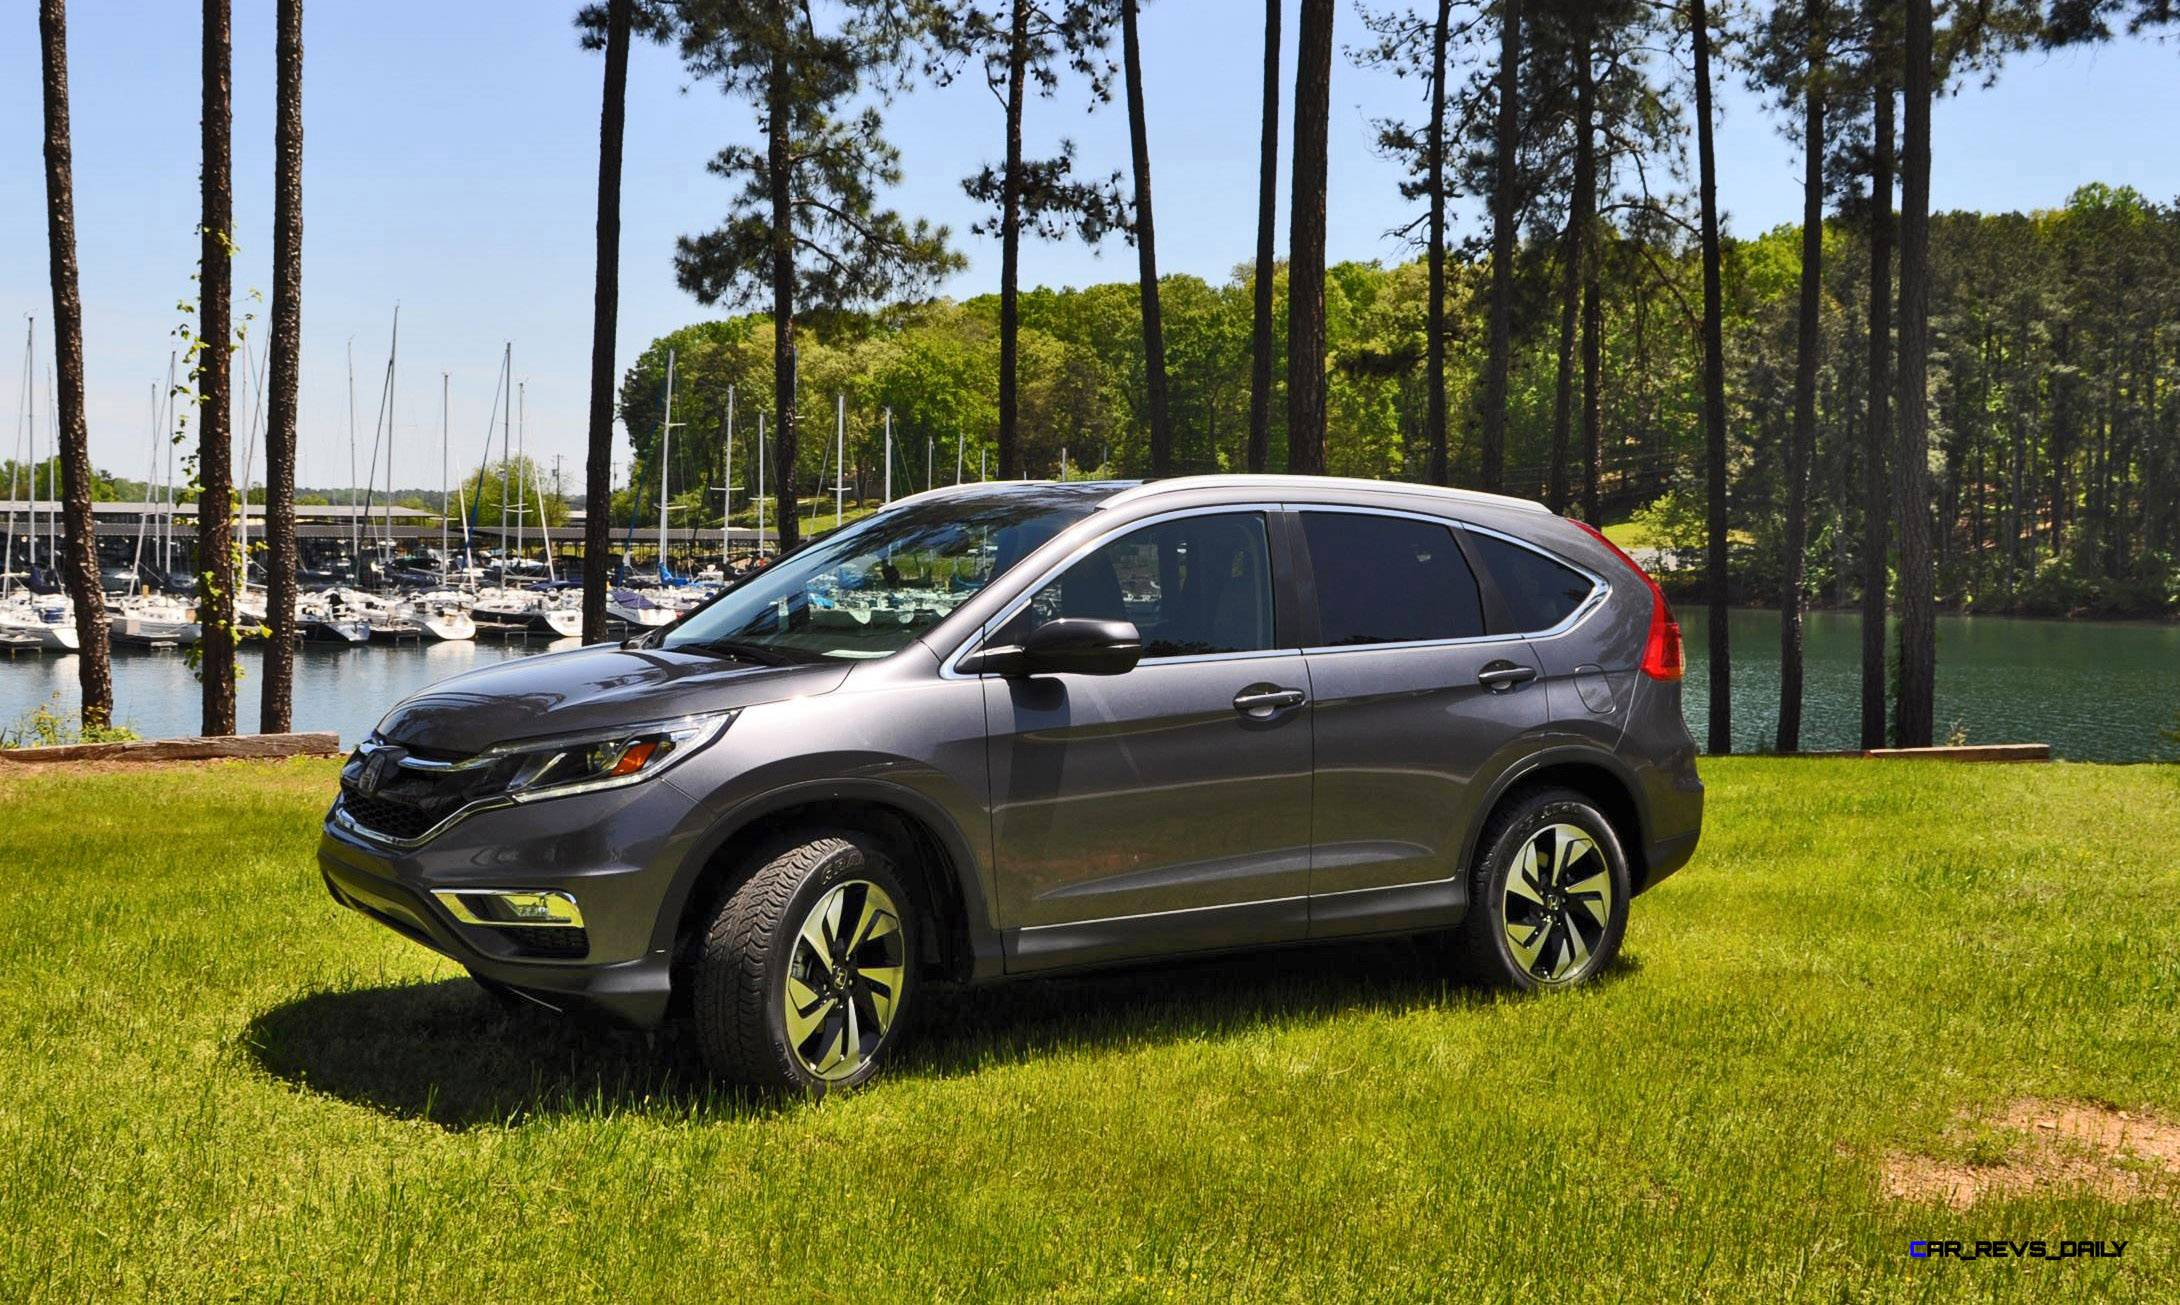 How Much To Lease Honda Pilot Touring